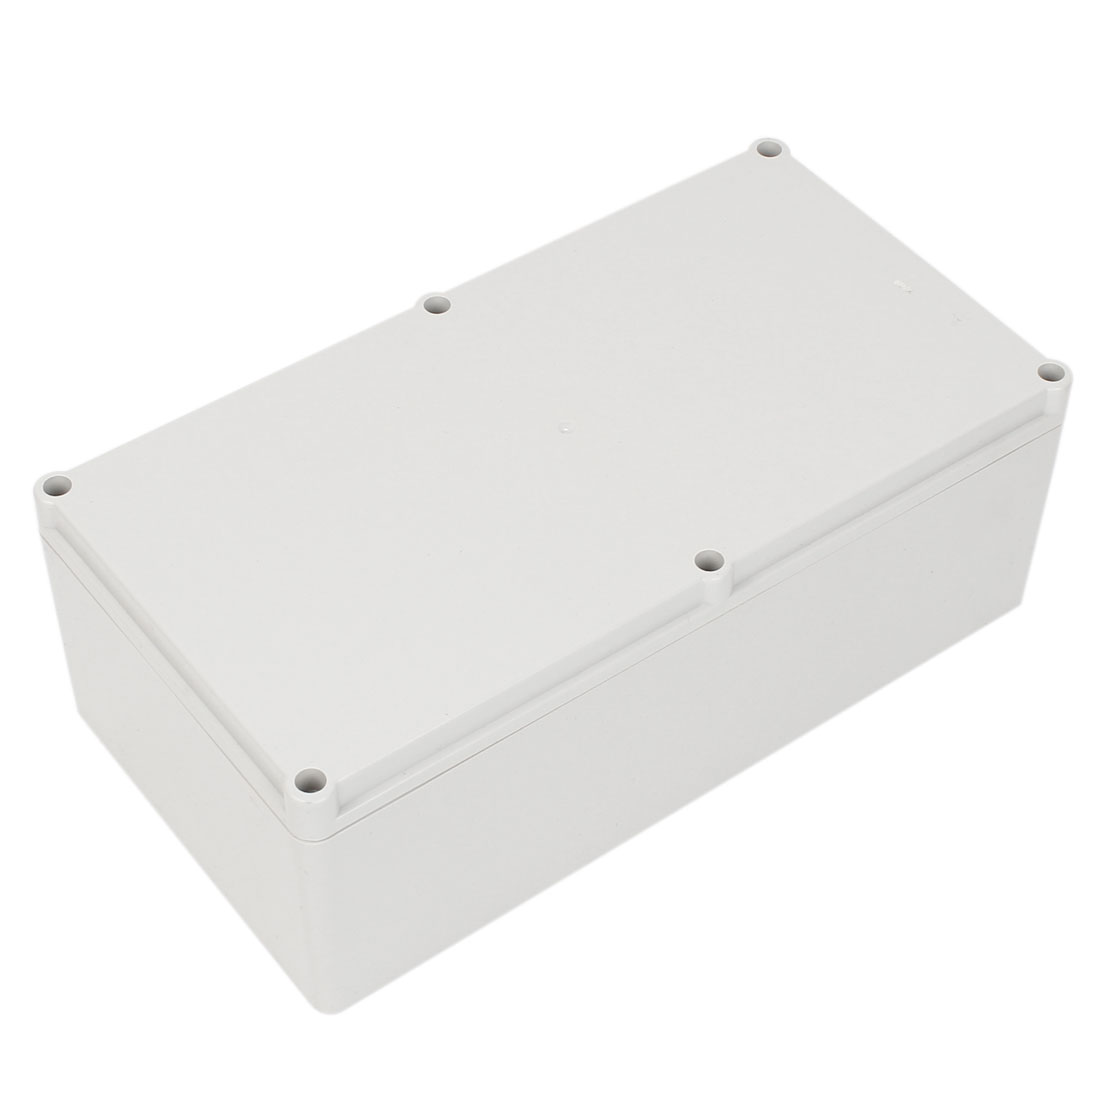 Rectangular Waterproof Plastic DIY Junction Box Case 265mmx135mmx95mm